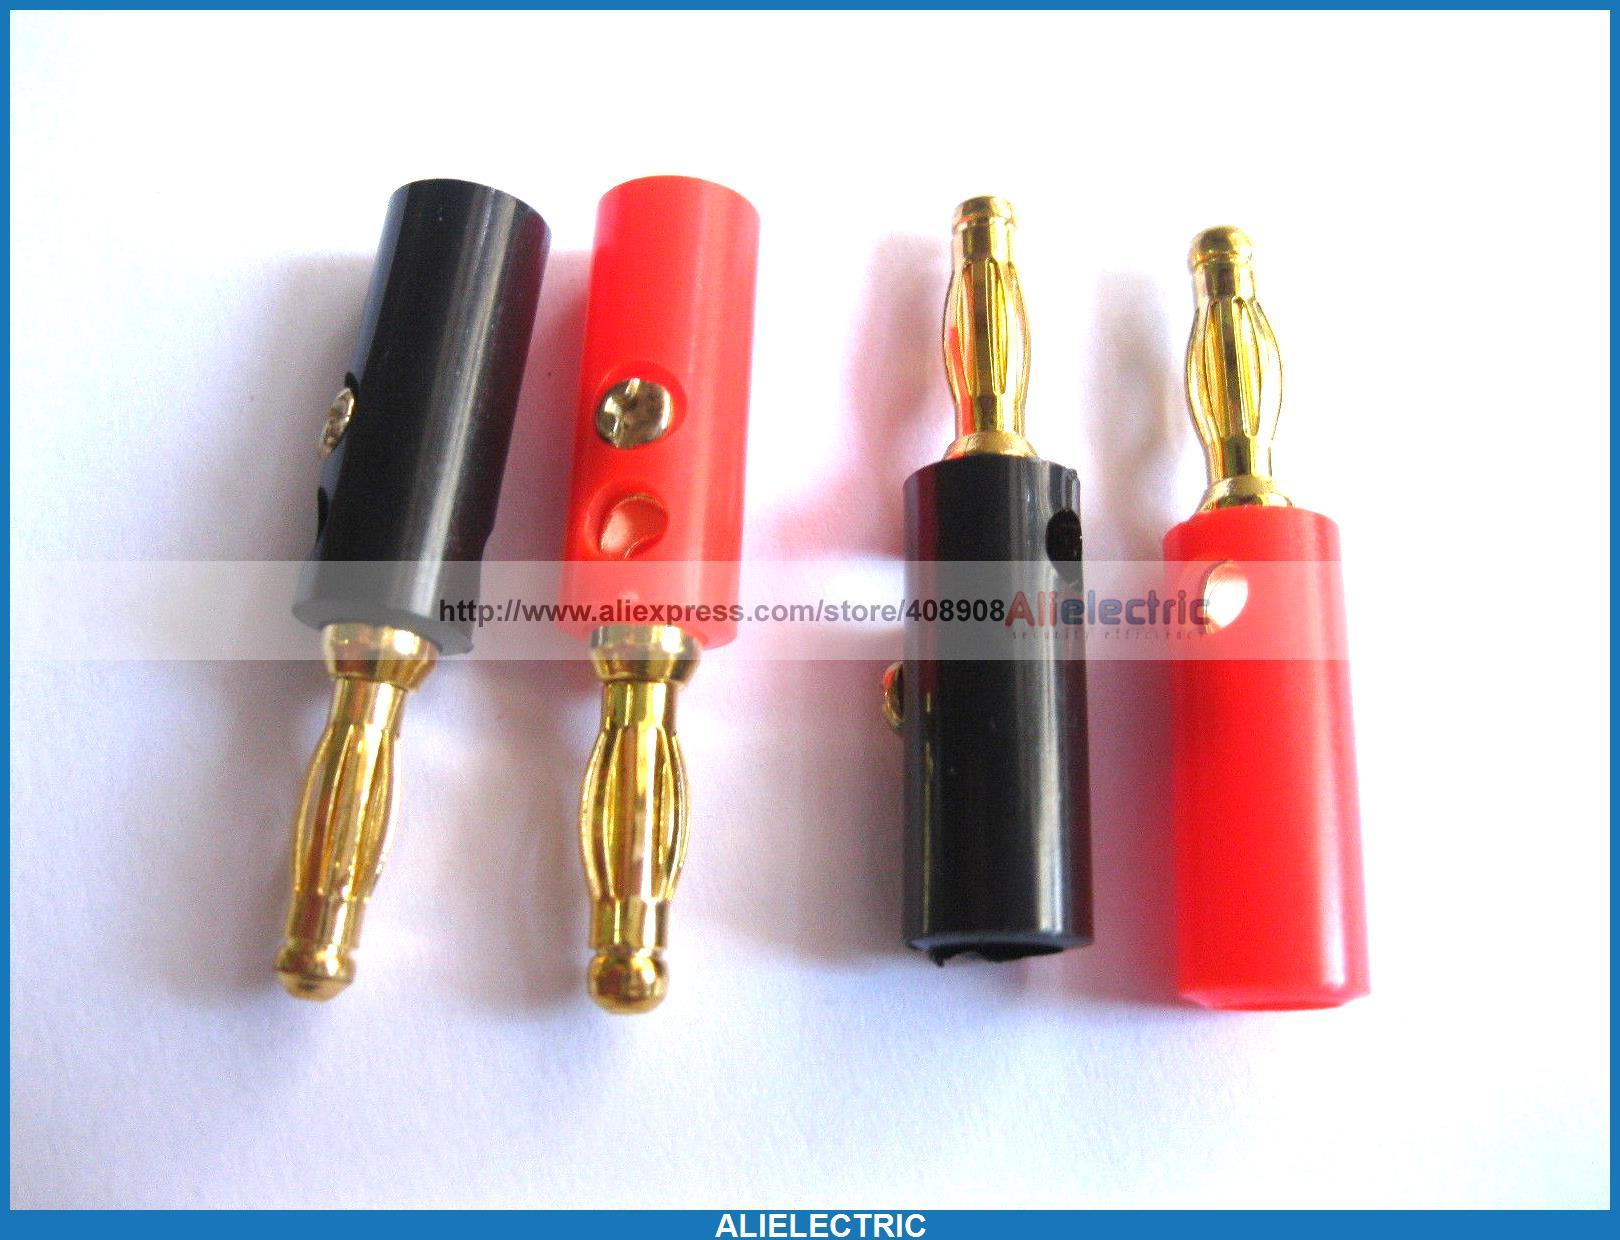 80 Pcs Banana Plug Gold Plated Red Black 40mm 215 <br>